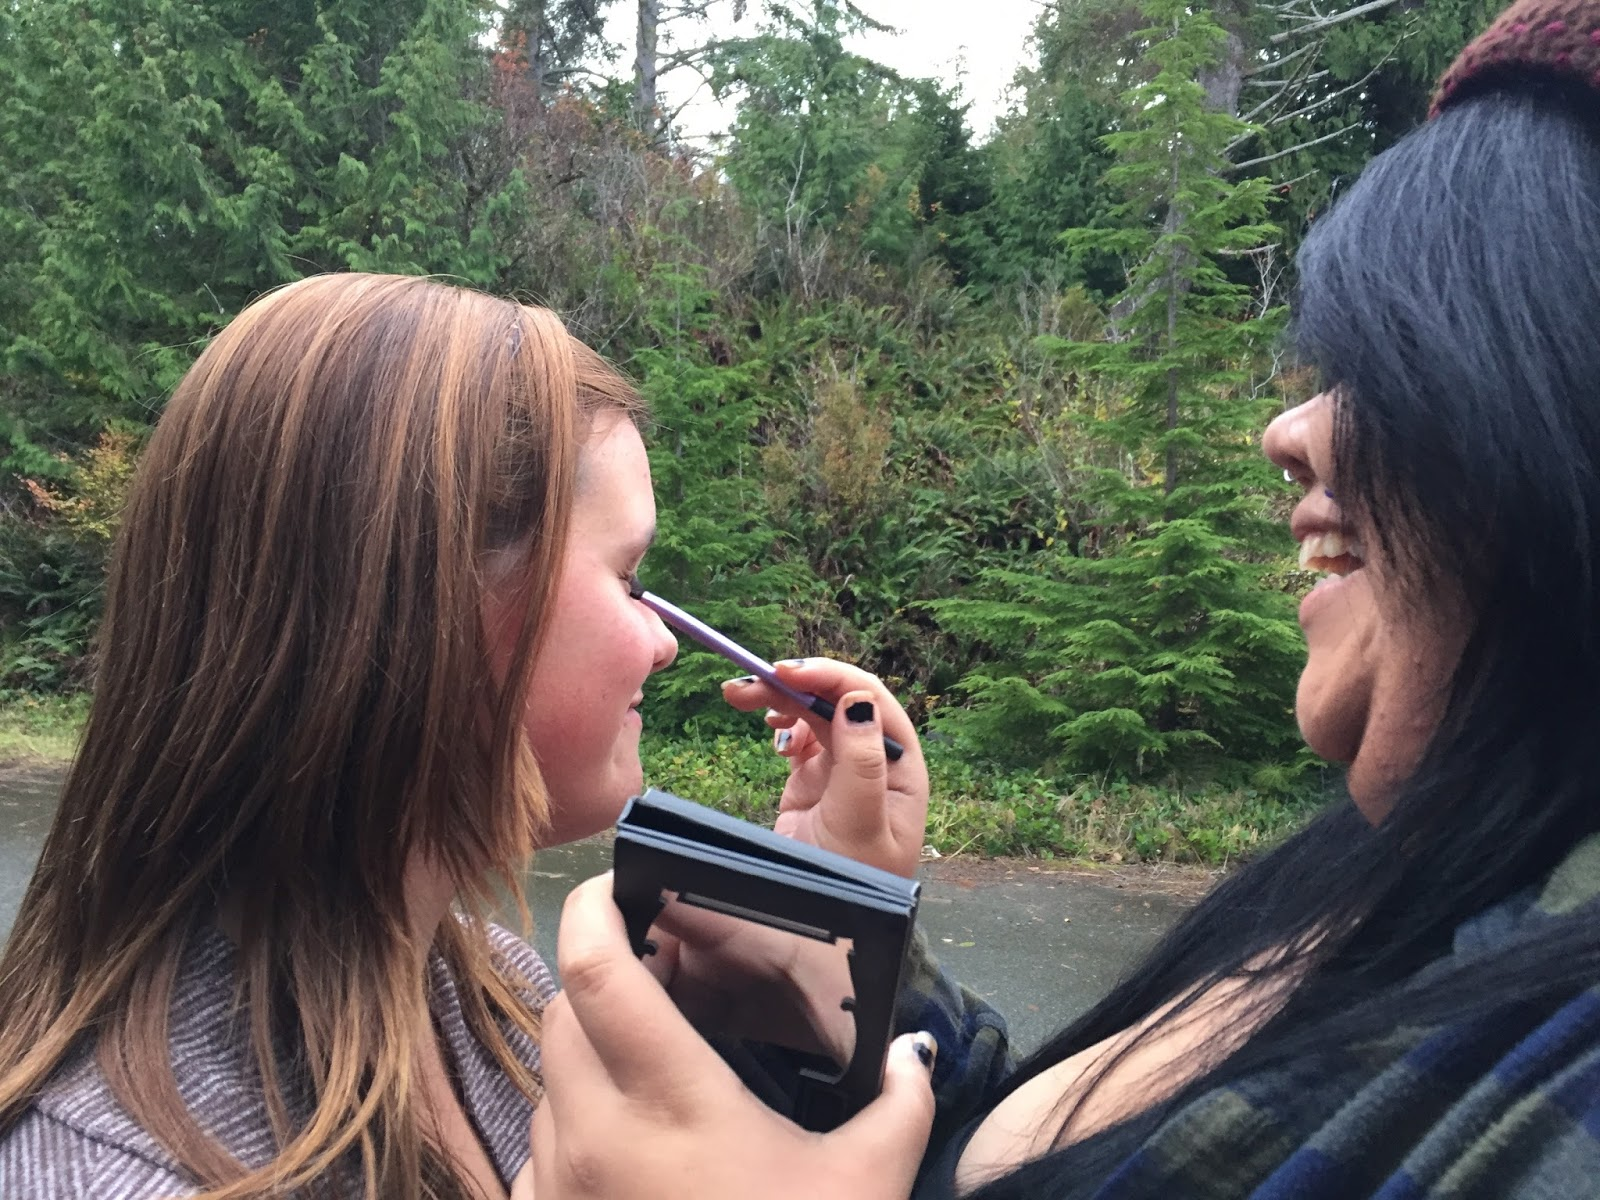 A little makeup and laughter